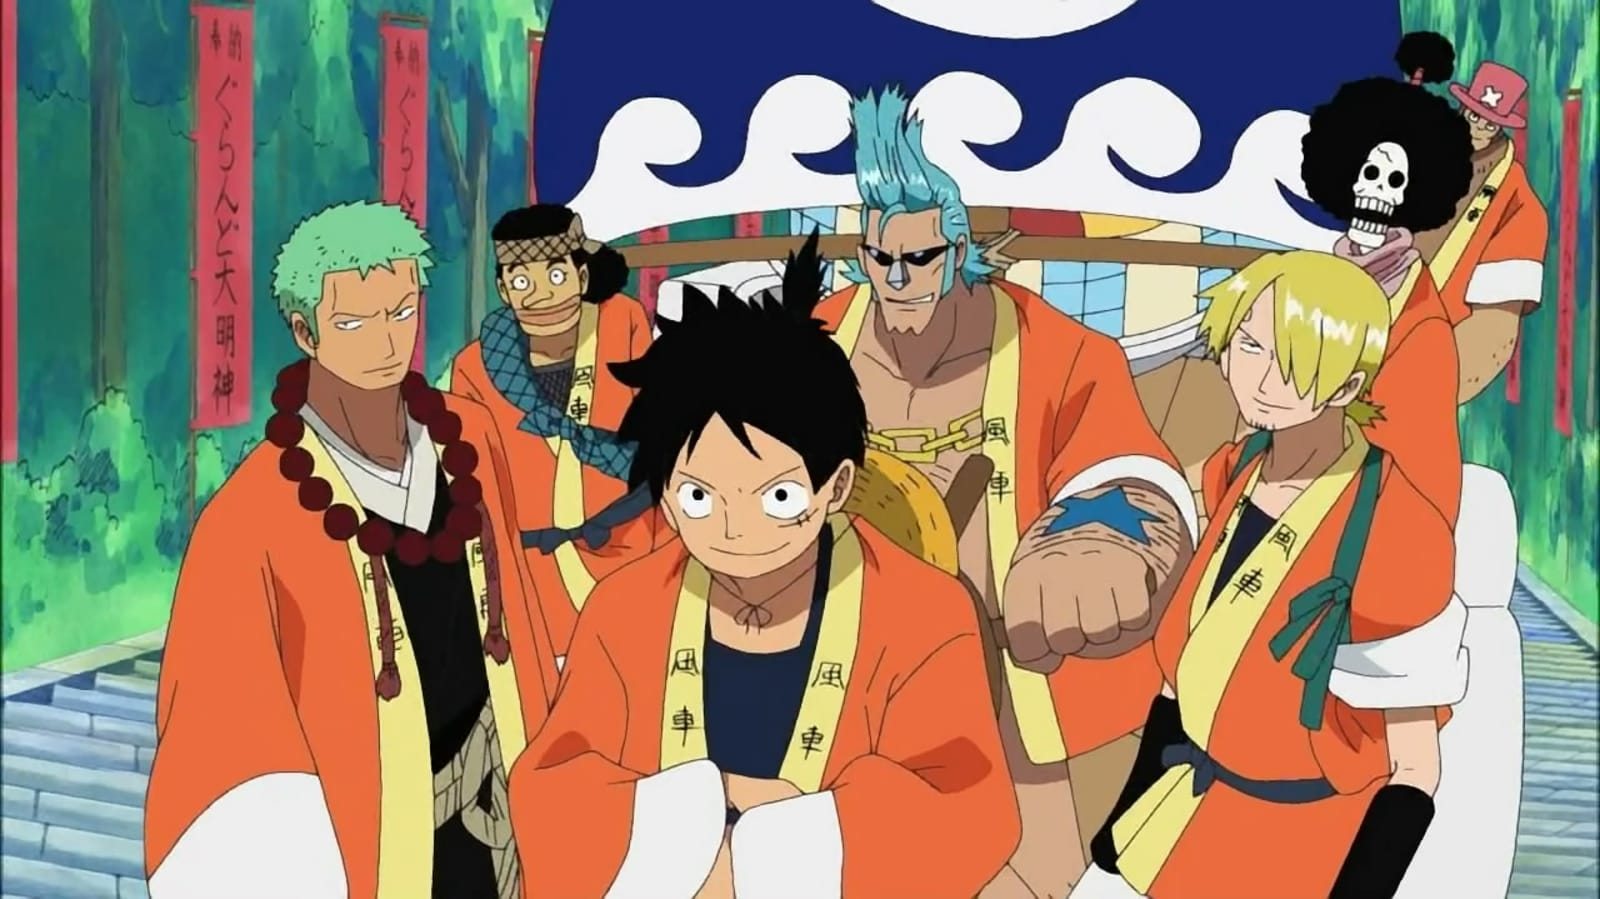 Netflix is turning manga and anime One Piece into a live-action series